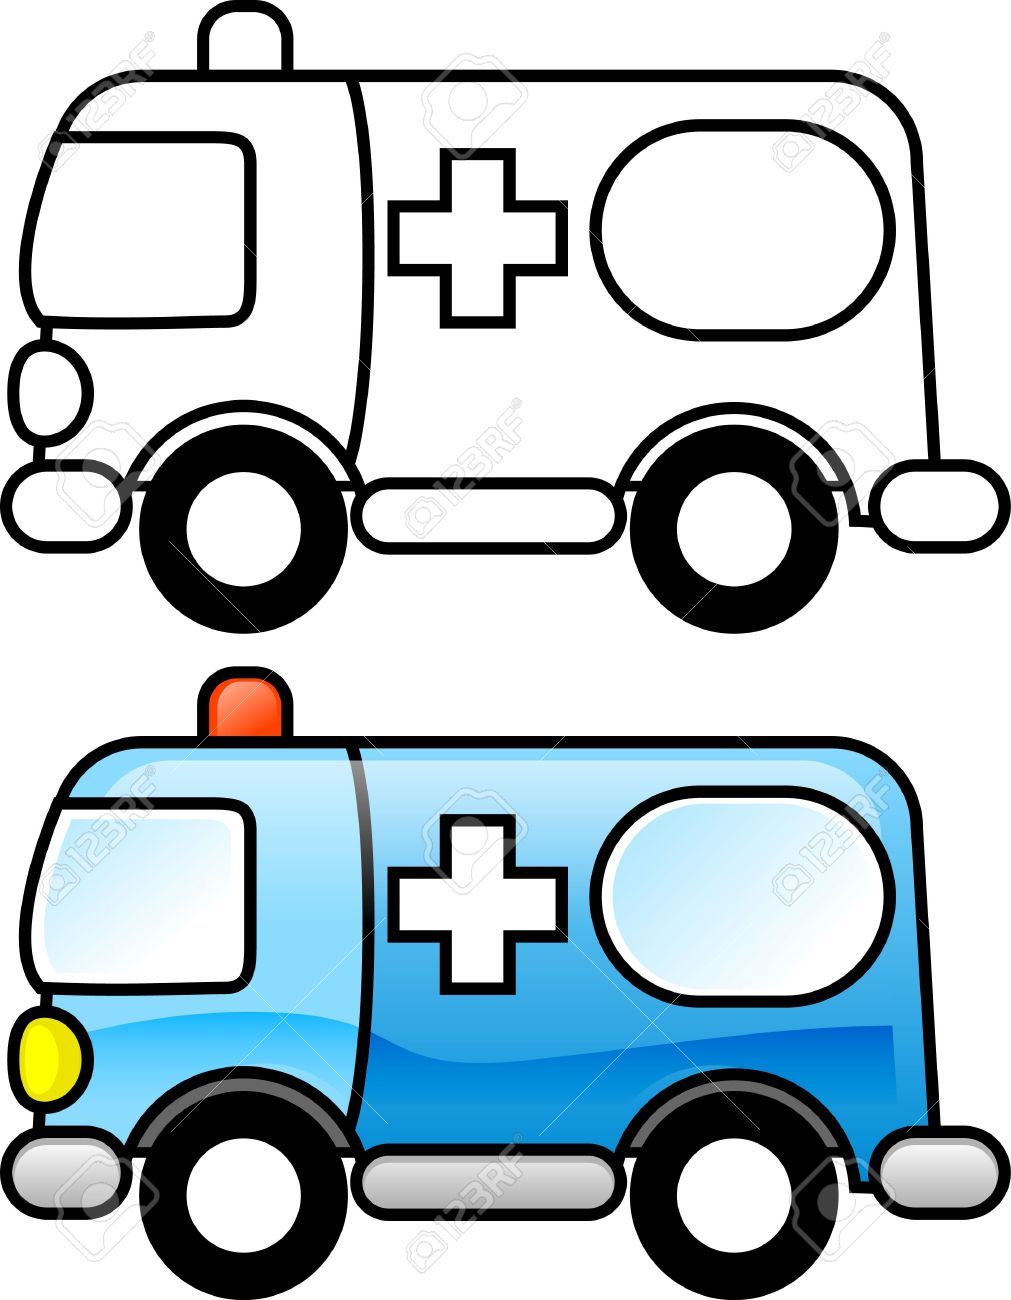 ambulance printable coloring page for children or you can use it as clip art - Ambulance Coloring Pages Print